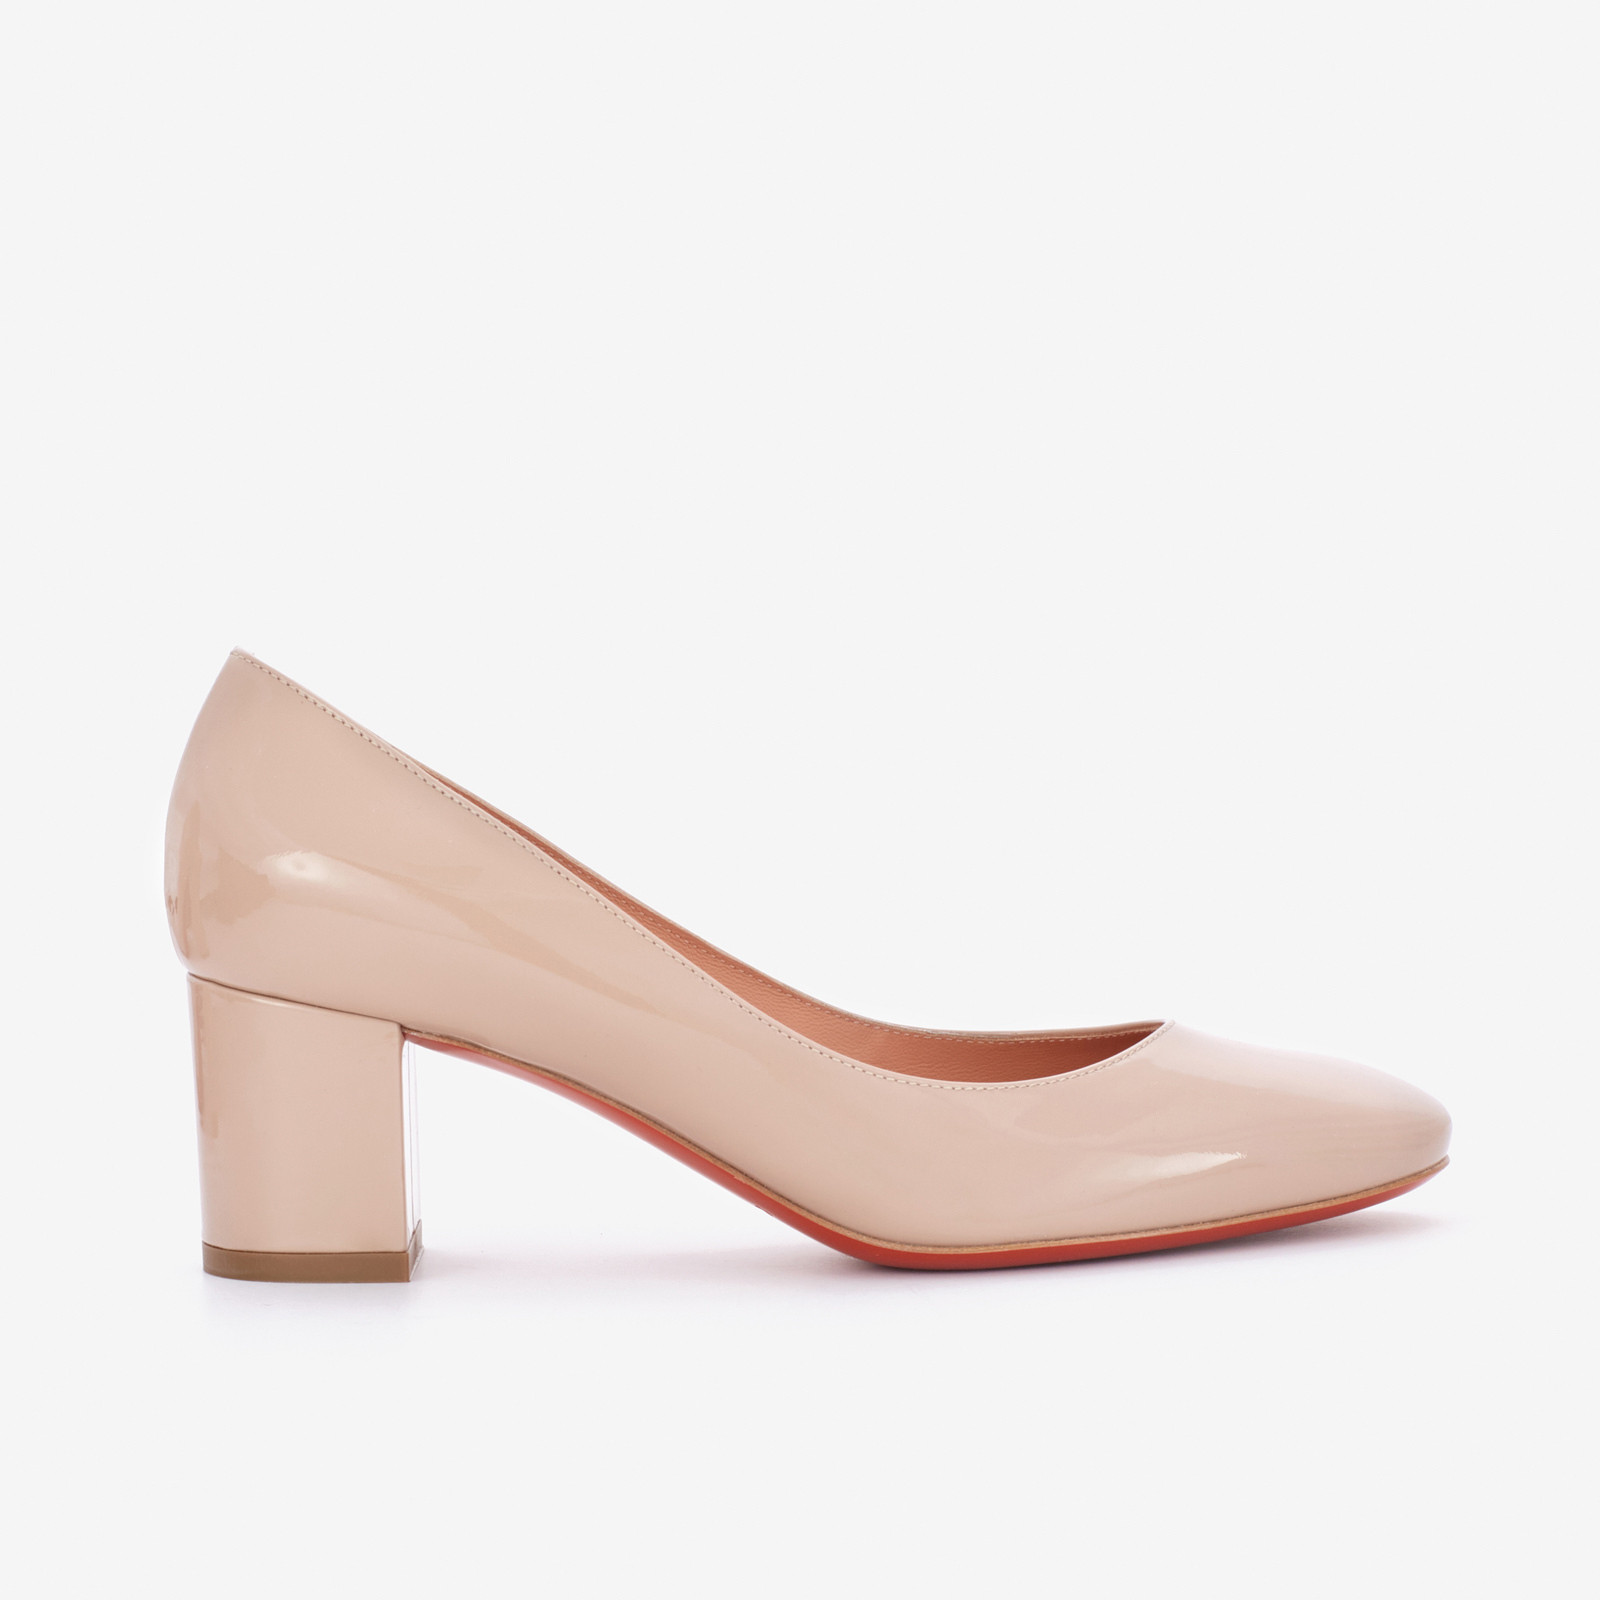 Nude Mid Heel Shoes DDJlSQKq